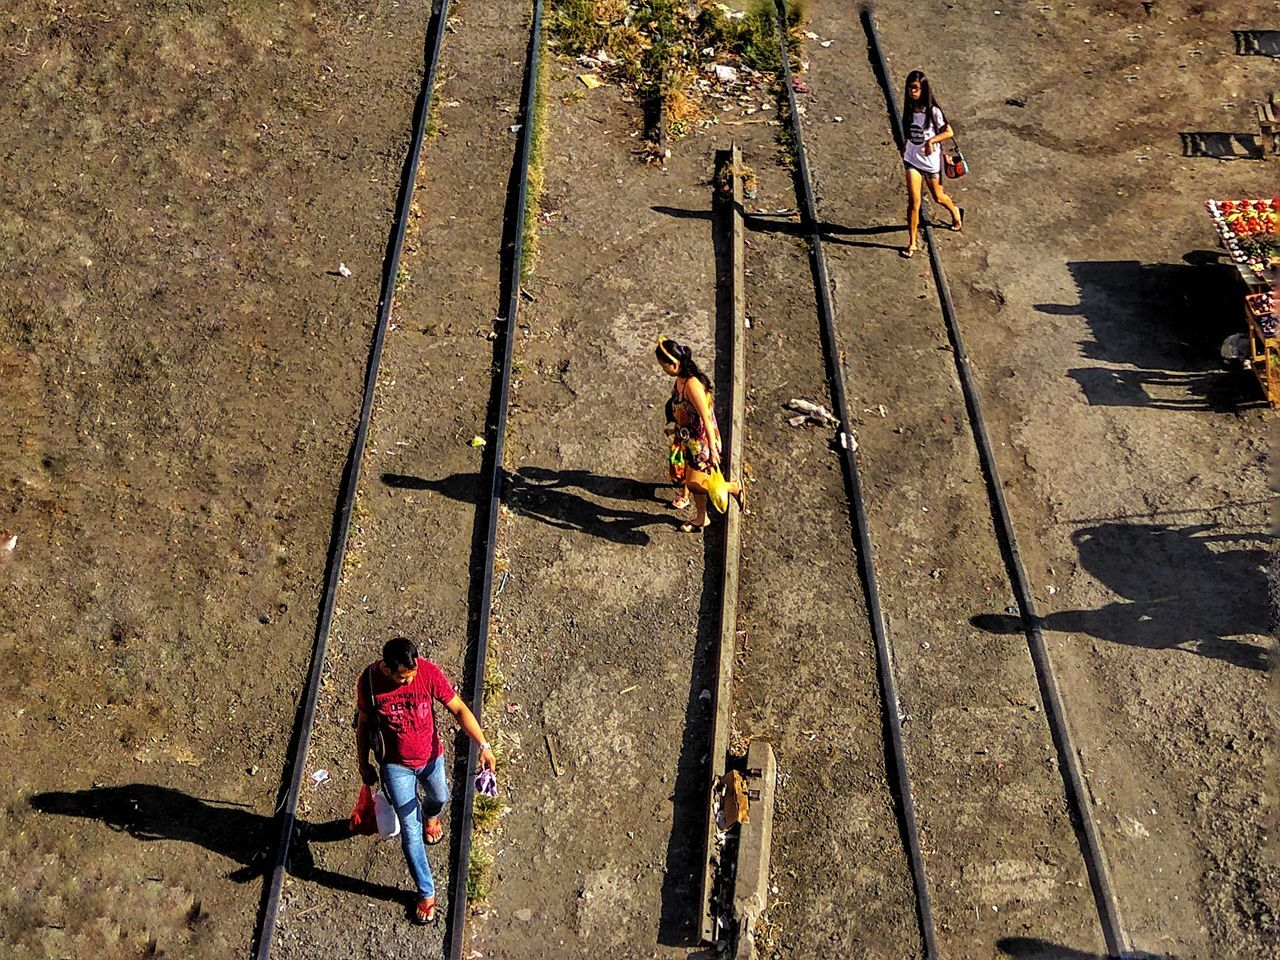 Mobile Photography Street Photography Eyeem Philippines Kulotitay Clicks High Angle View Railway Track Shadows & Lights Track Train Afternoon Walk Mobileglobalshooters Outdoors Walking Three People Diagonal From My Point Of View Flying High